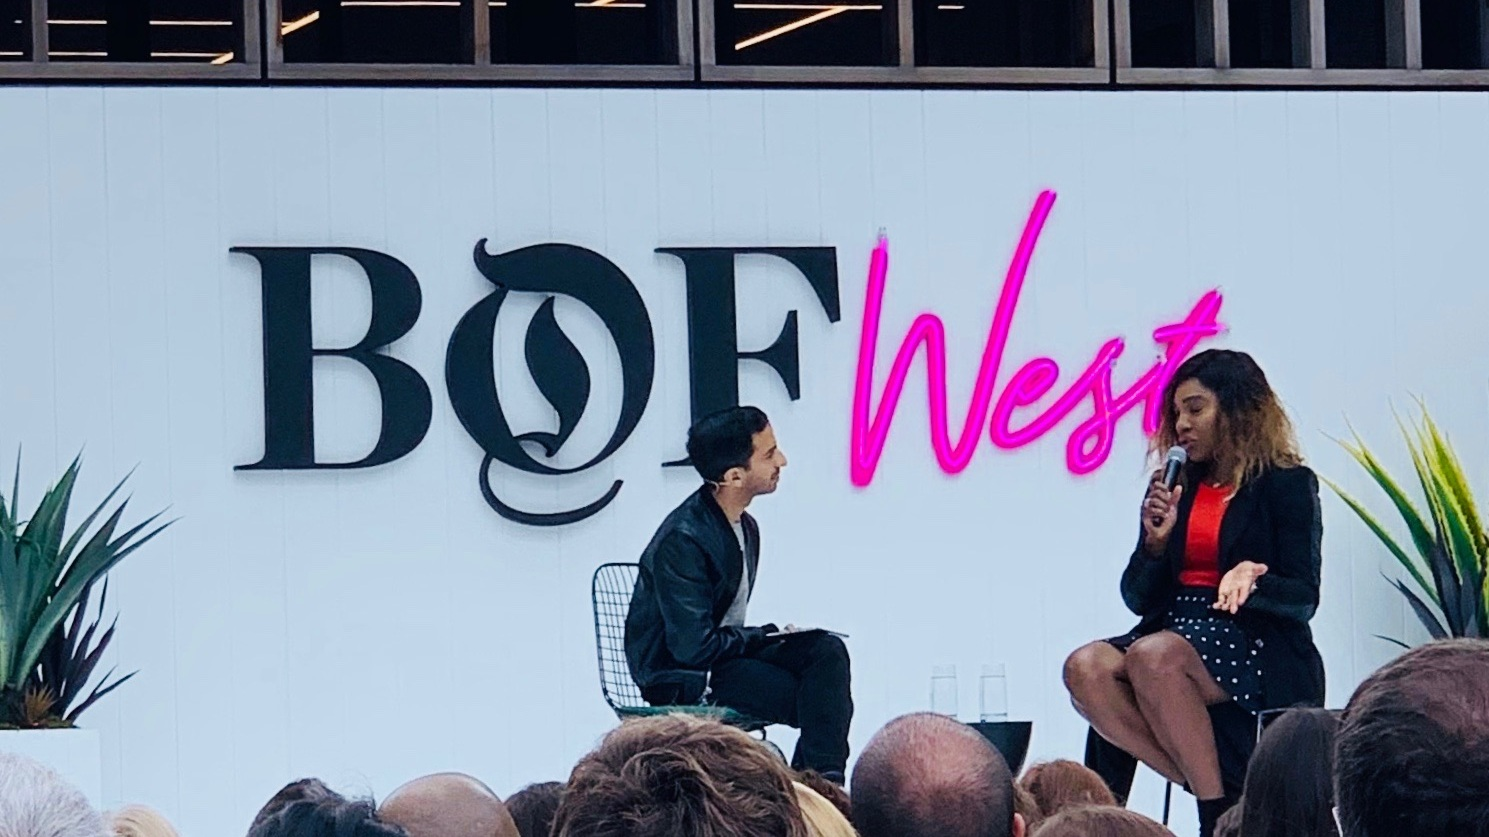 Serena speaking with BOF founder Imran Amed at the BOF West summit